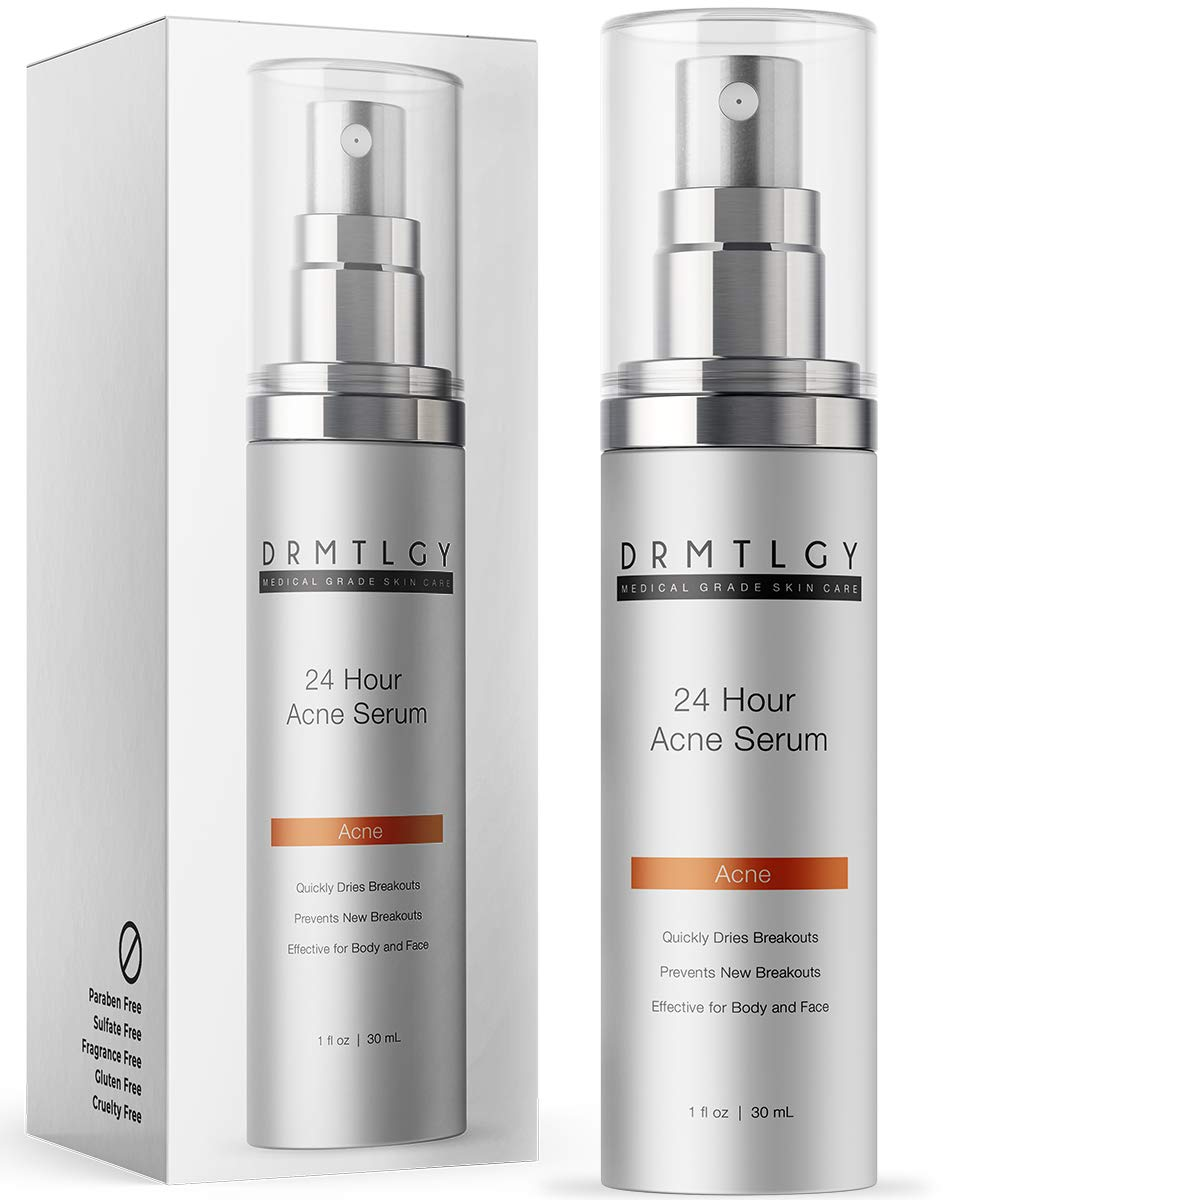 DRMTLGY Acne Spot Treatment and Cystic Acne Treatment. Acne Serum with Micronized Benzoyl Peroxide 5% and Glycolic Acid